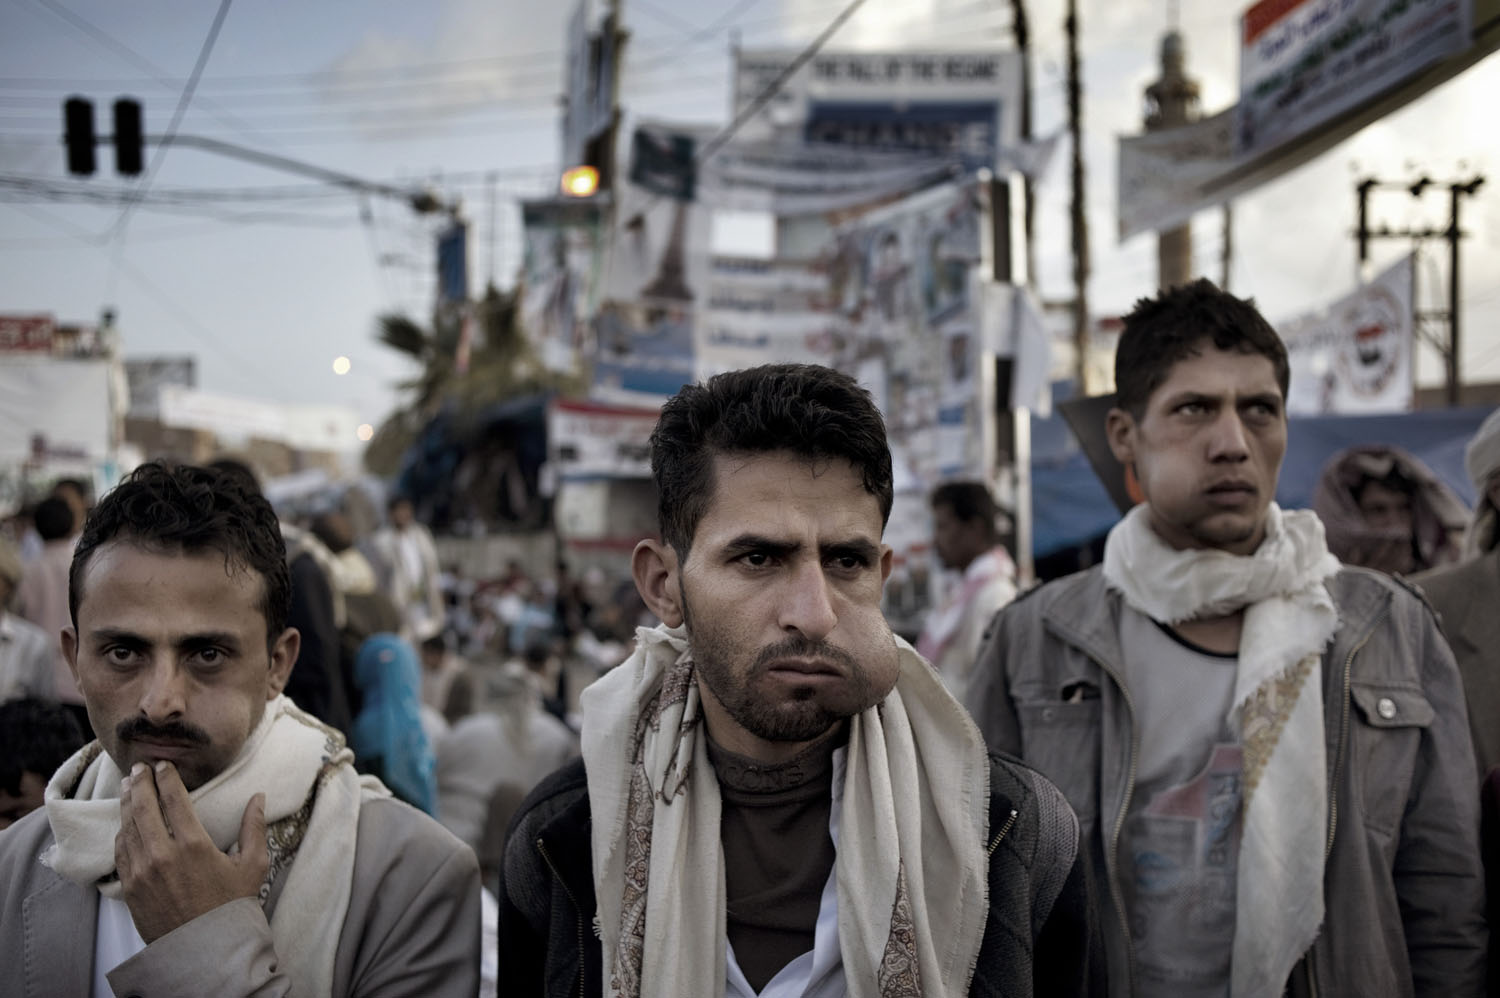 Anti-government protesters, their cheeks bulging with khat, at Change Square near the university in Sana'a, May 13, 2011.